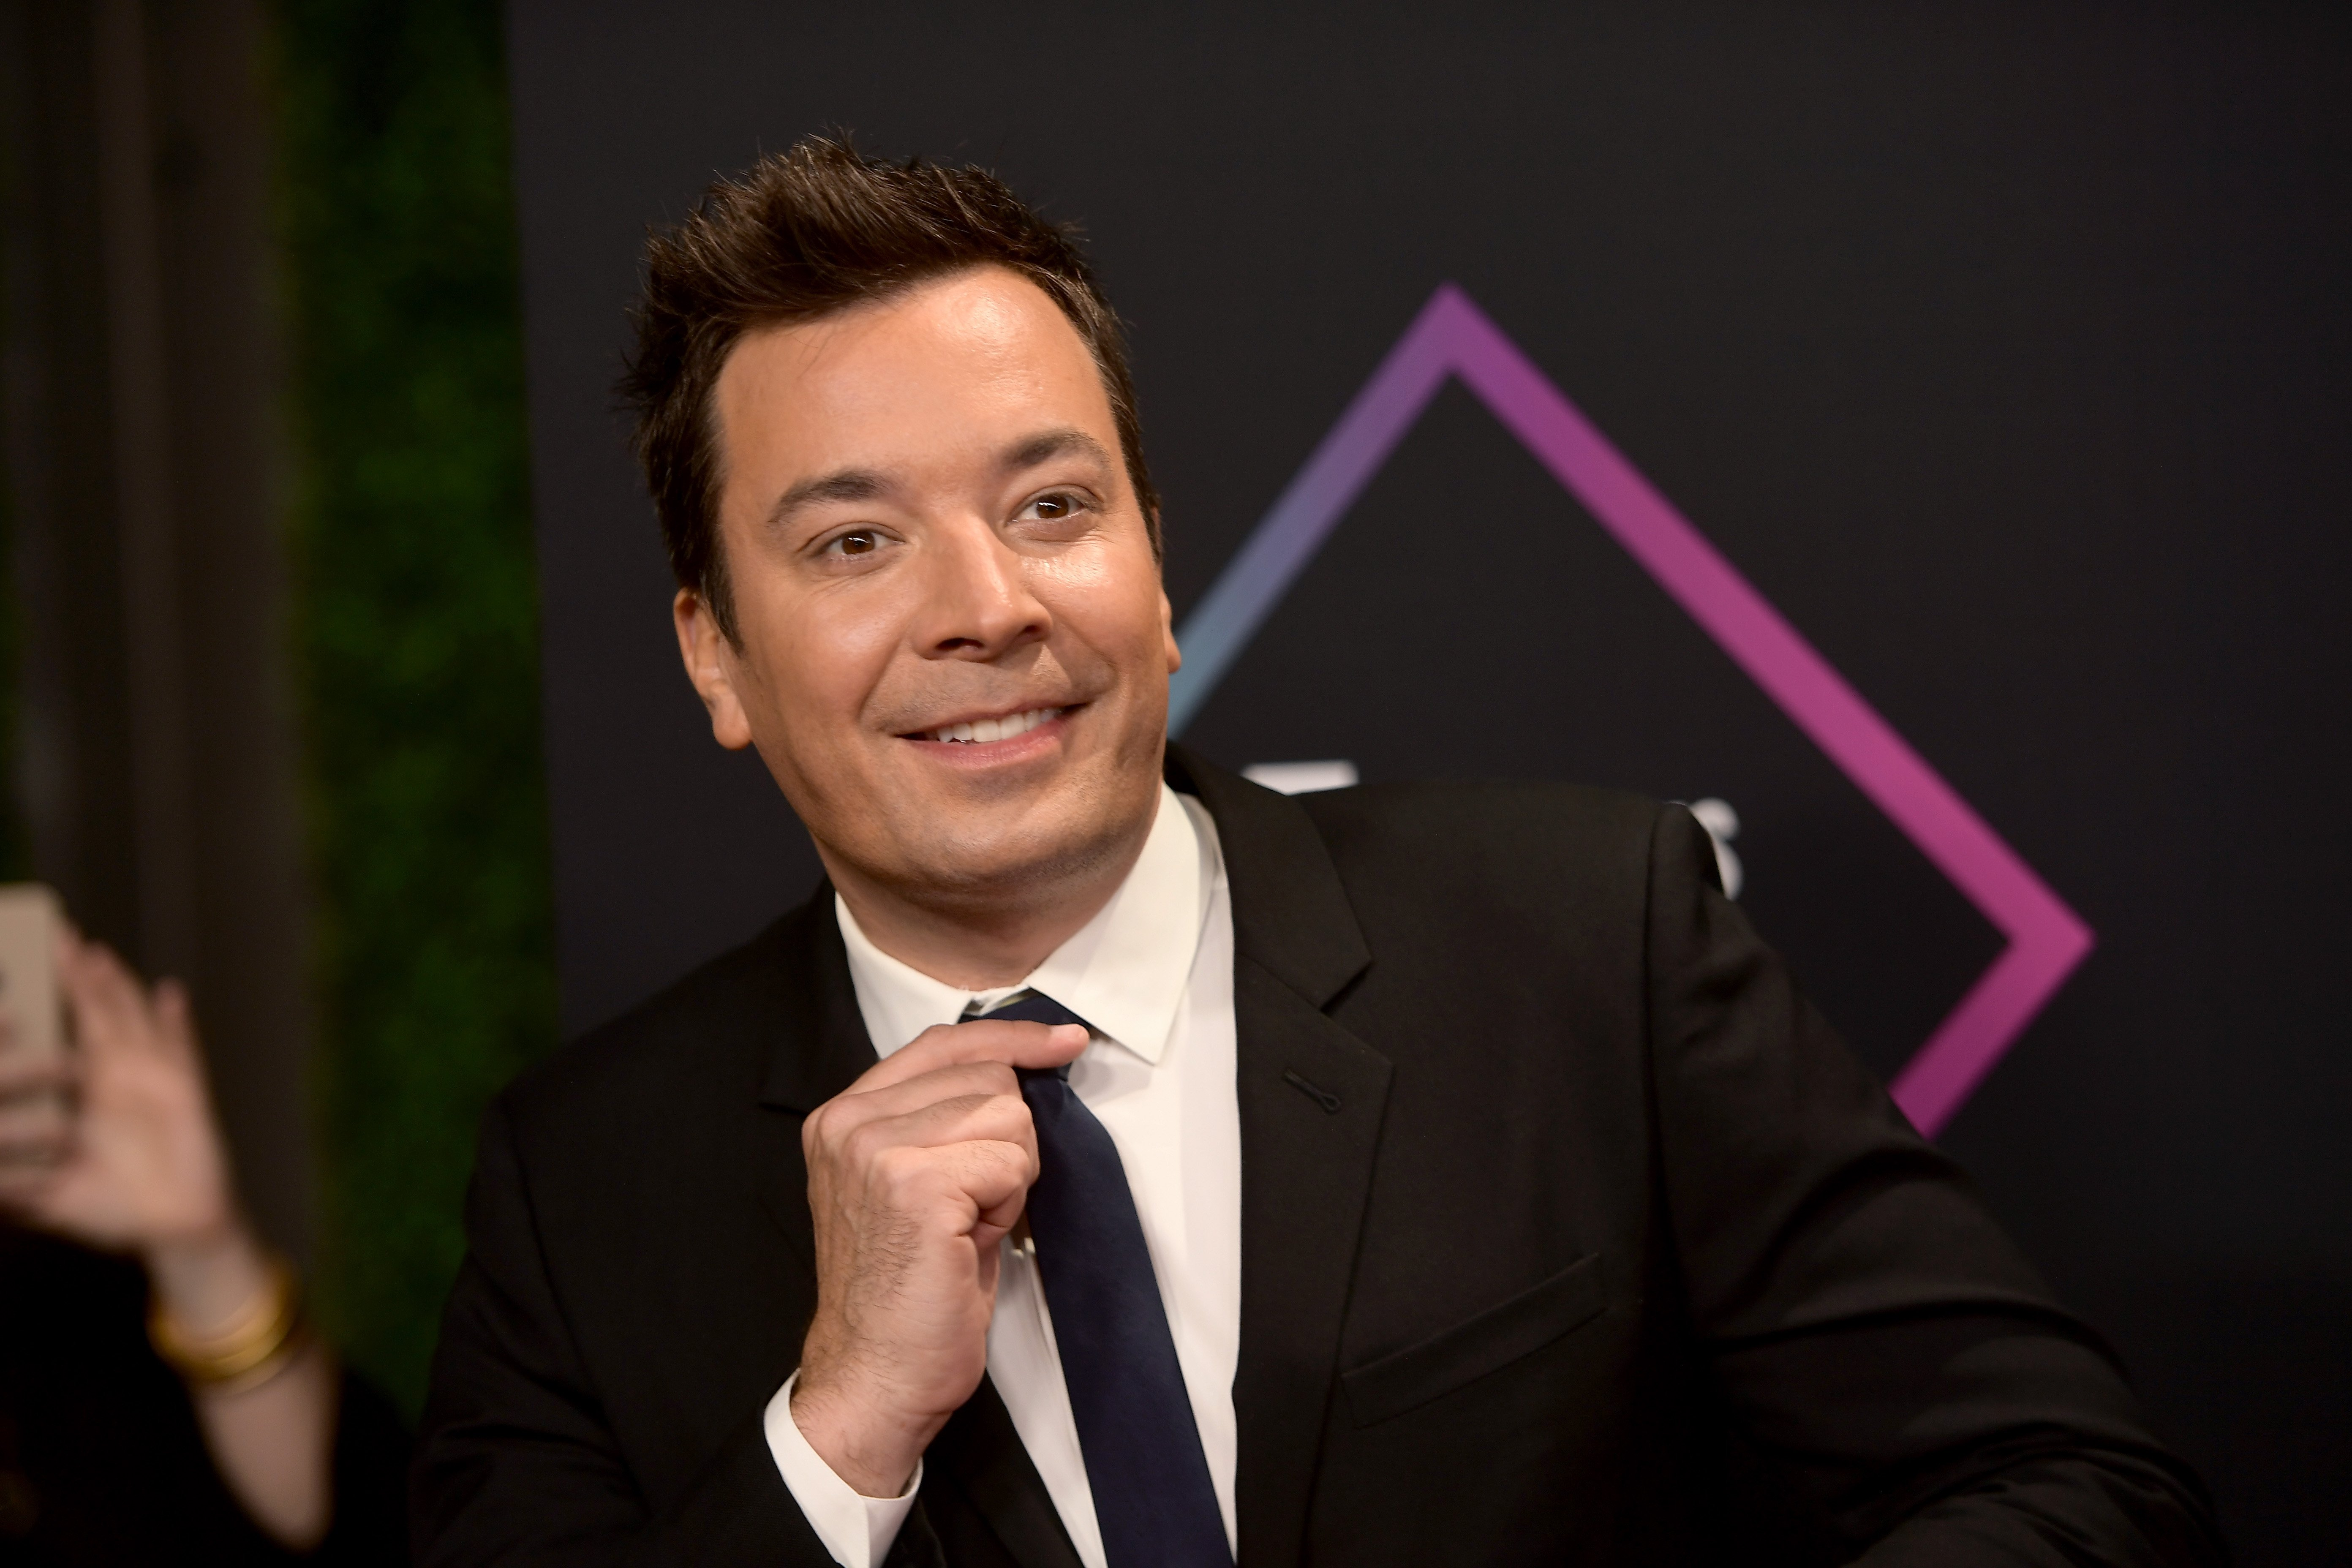 Jimmy Fallon Image Source: Getty Images.